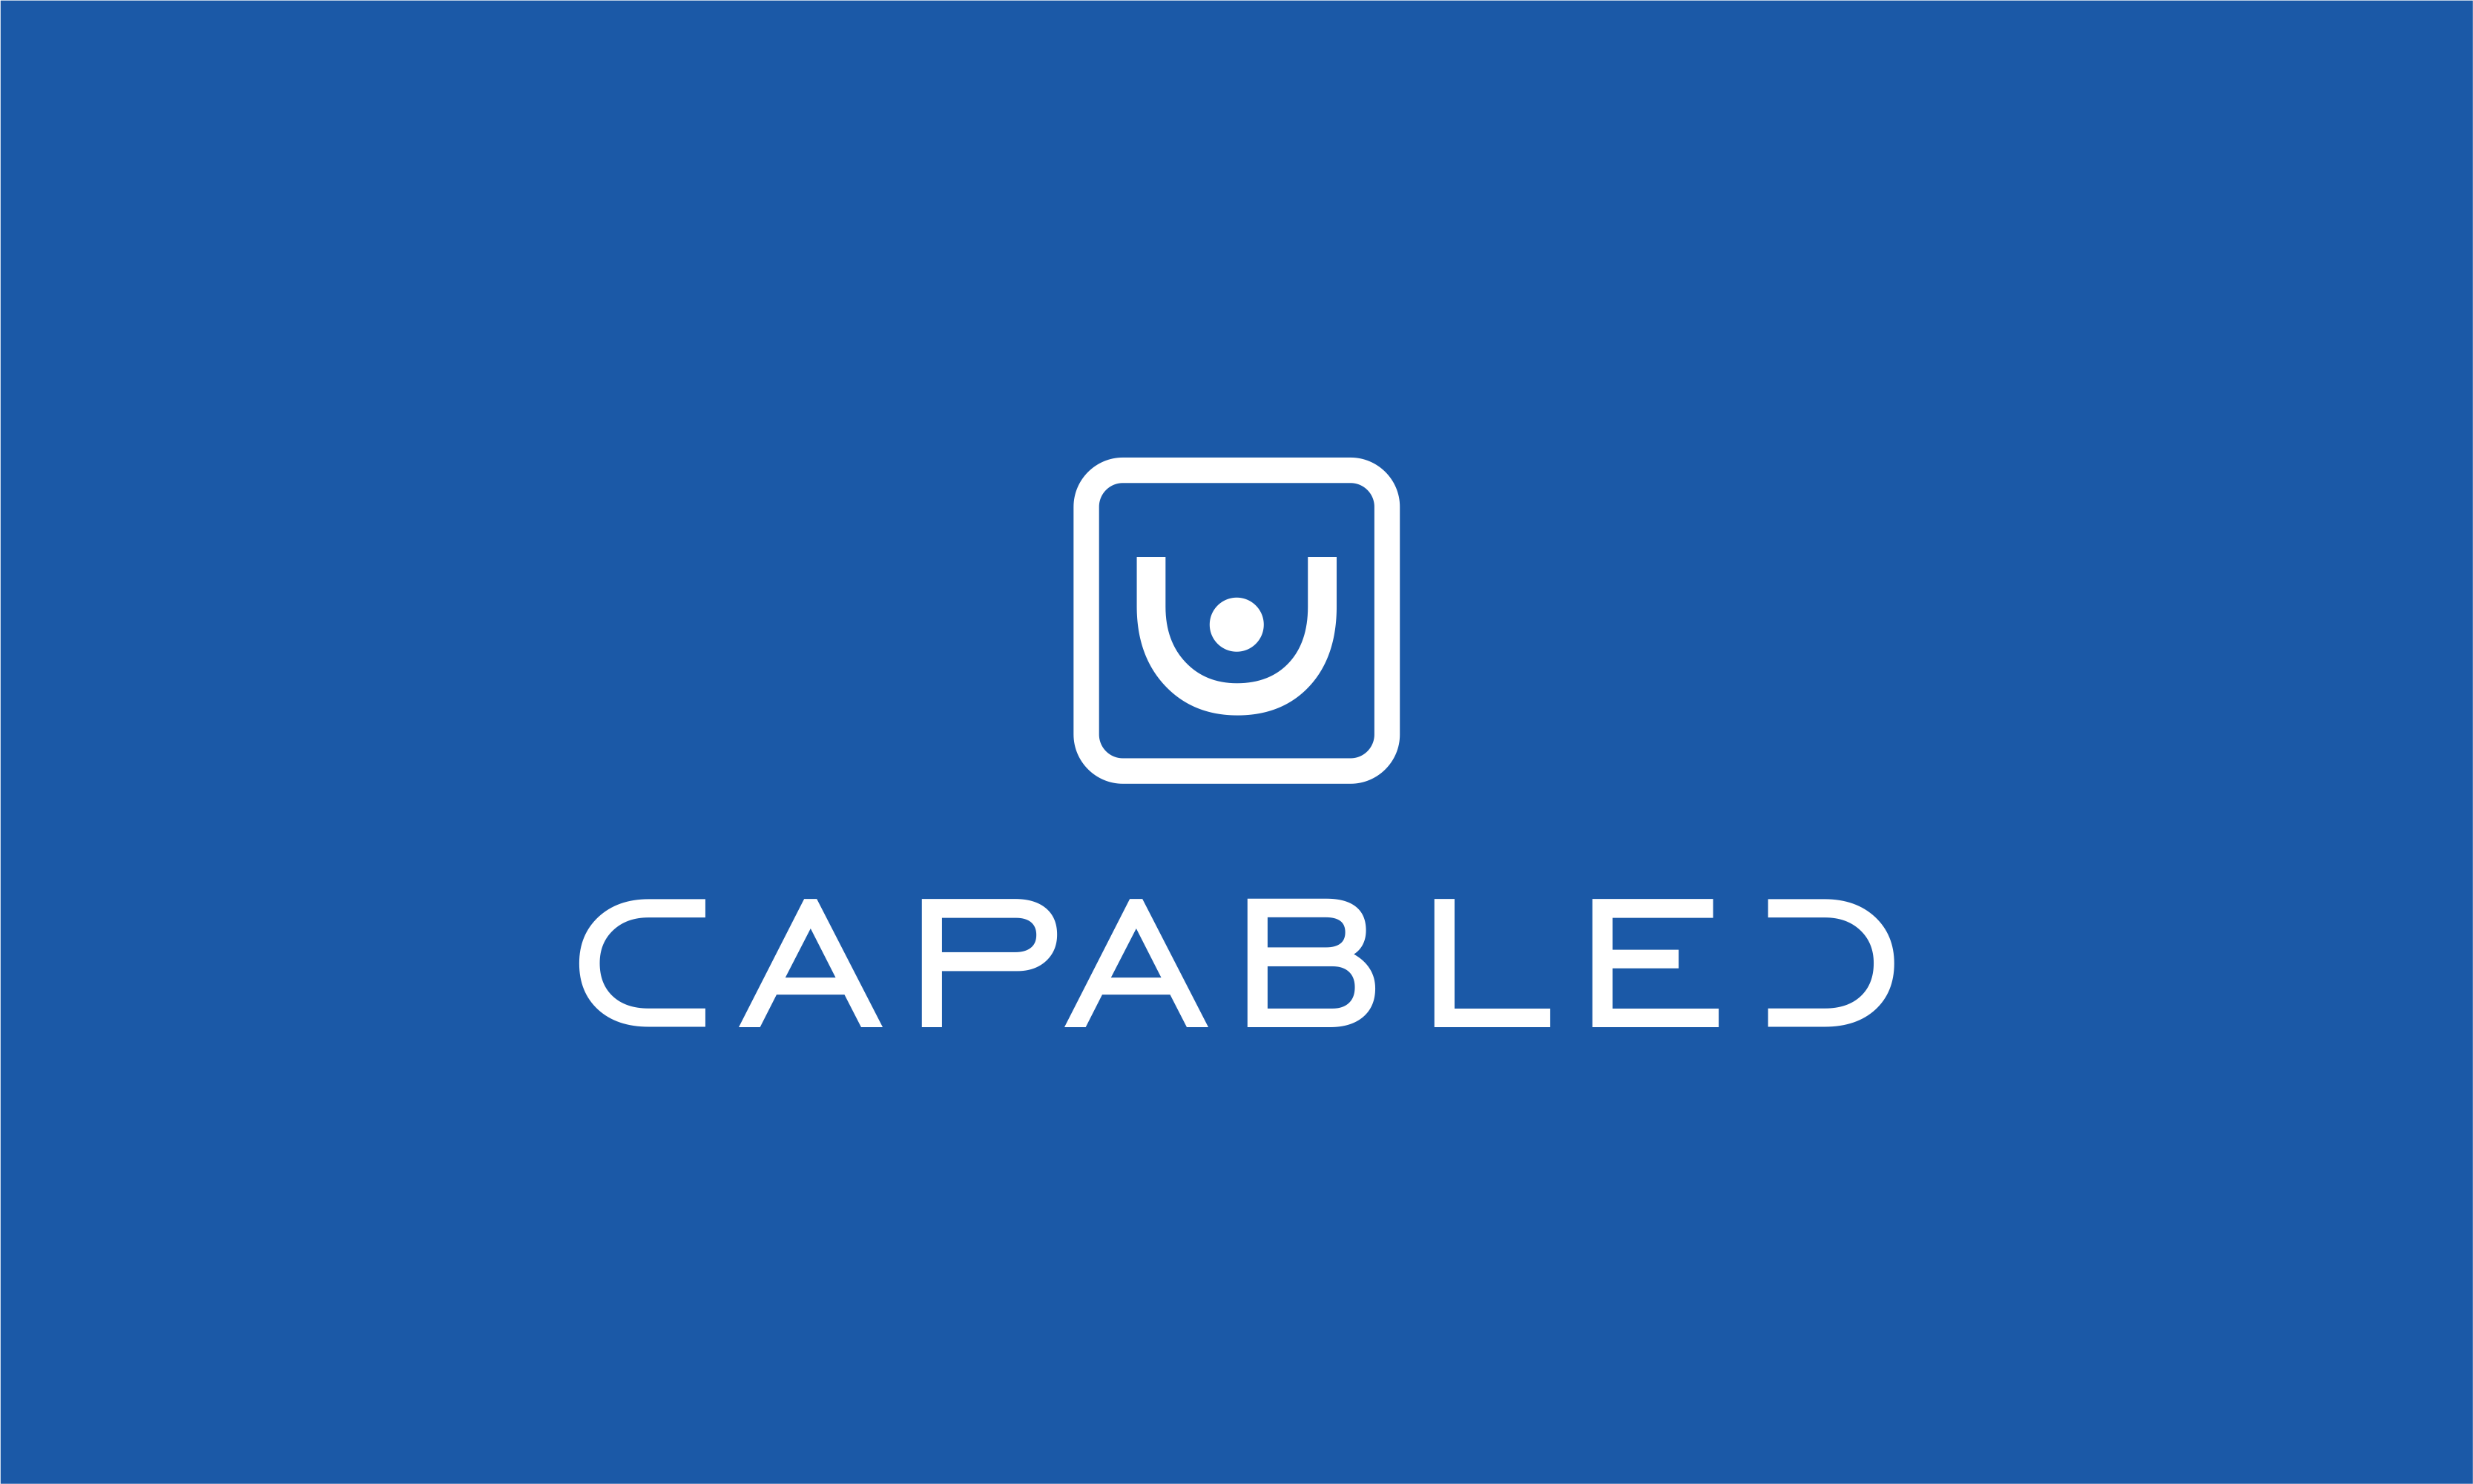 Capabled